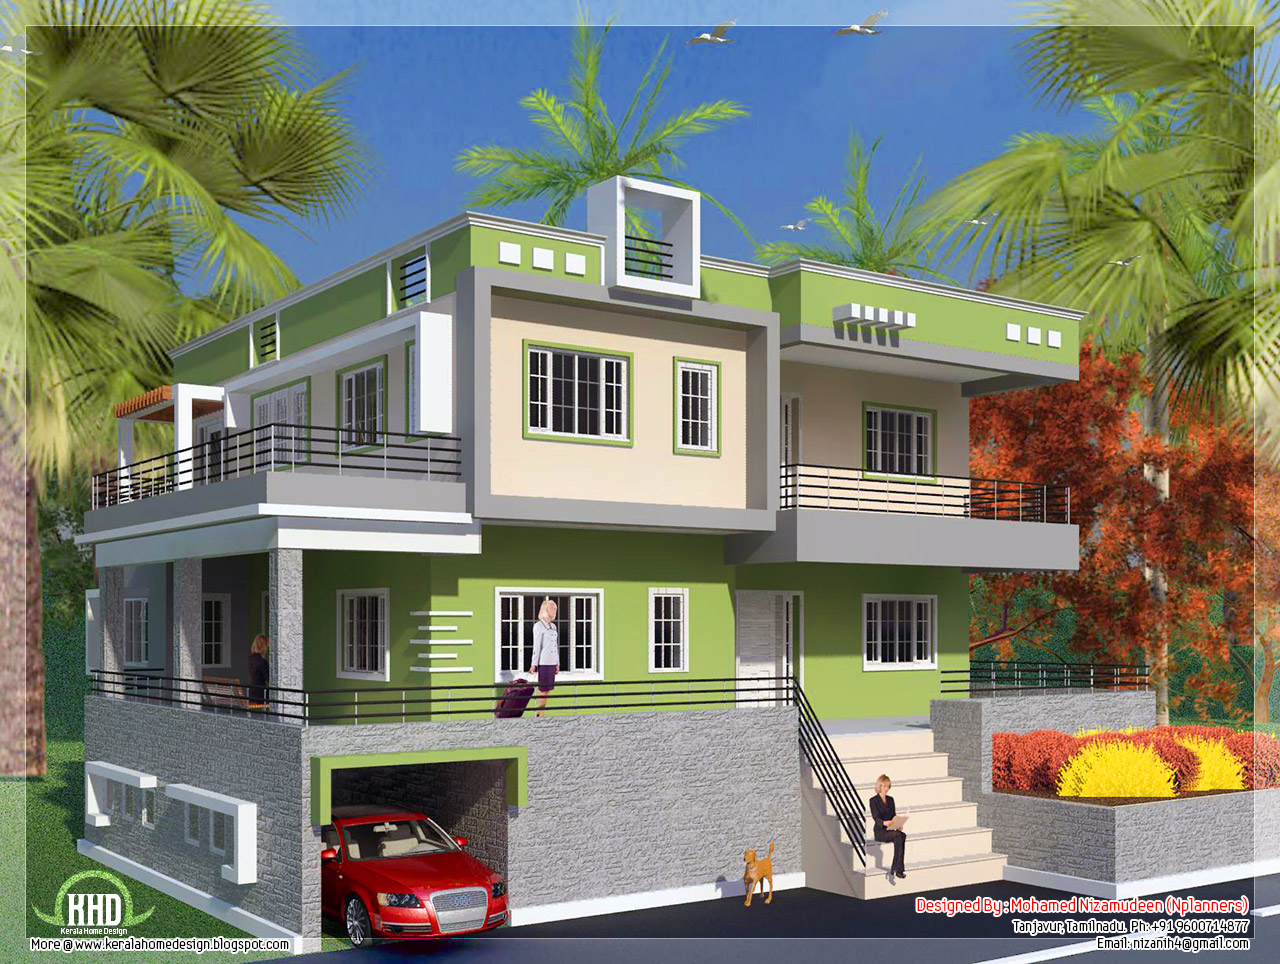 North Indian Style Minimalist House Exterior Design Home Design Plans